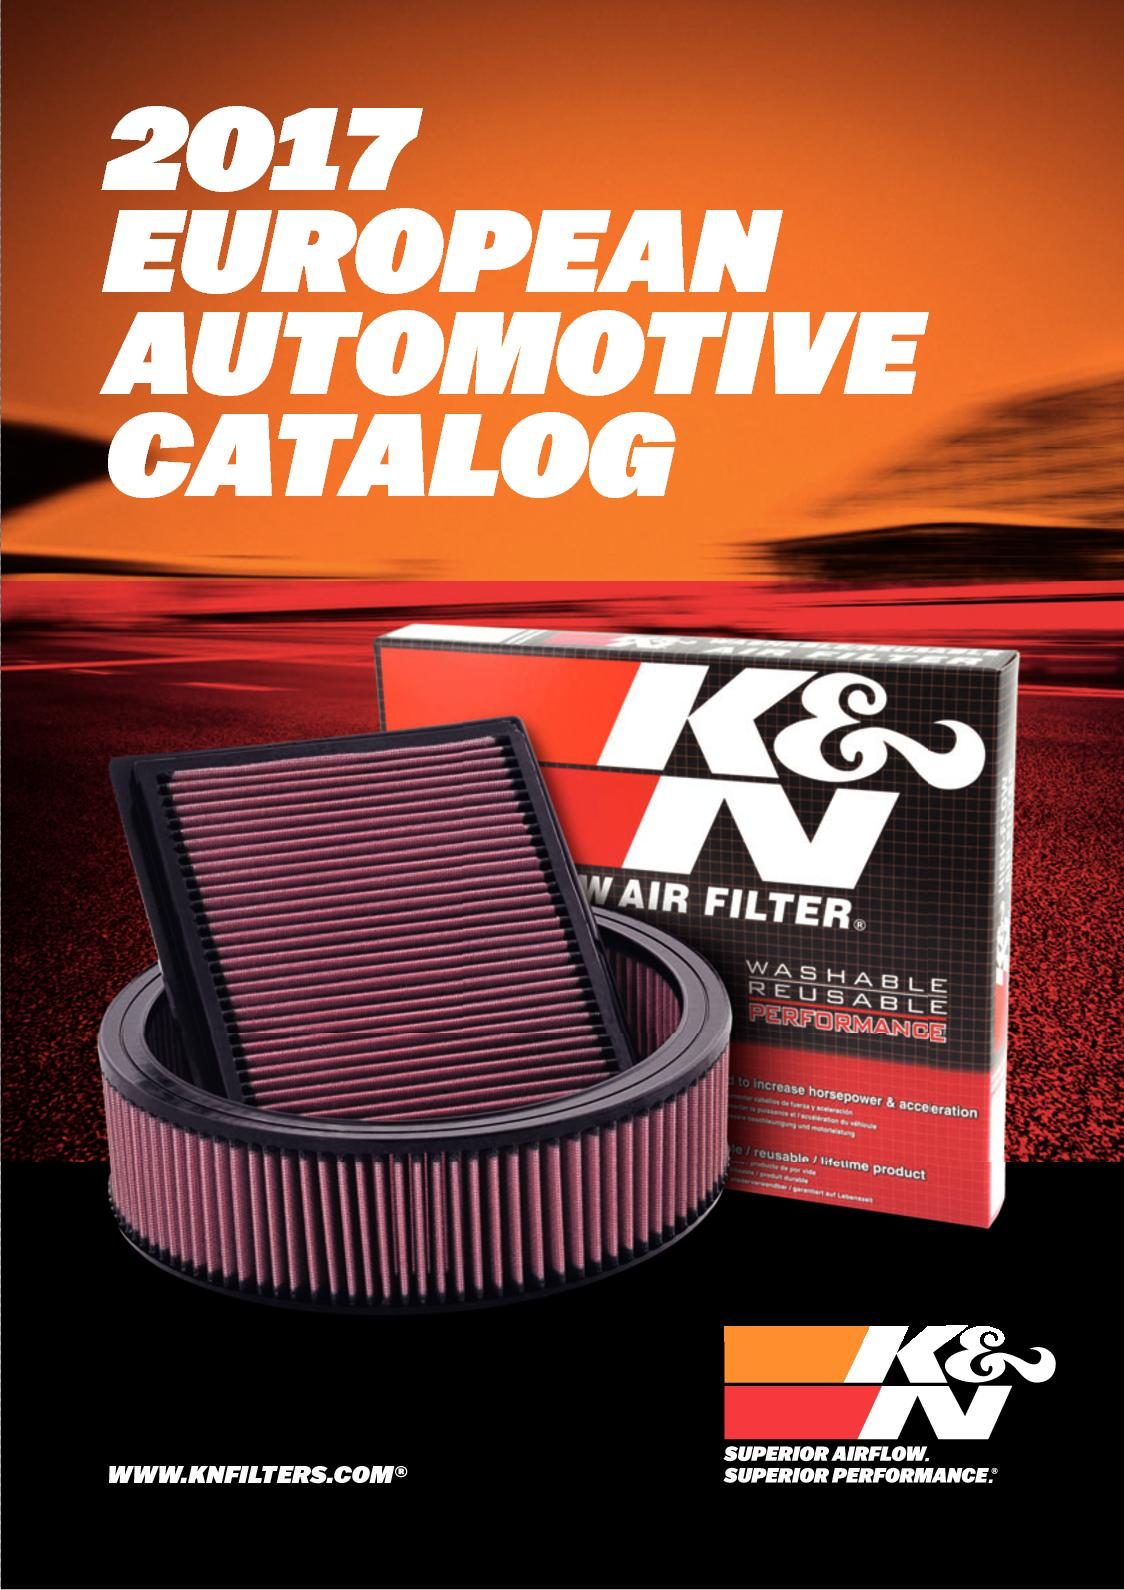 NEW Genuine K/&N Air Filter 33-2273 Jaguar XJ 2.7 3.0 V6 Diesel 2005-2015